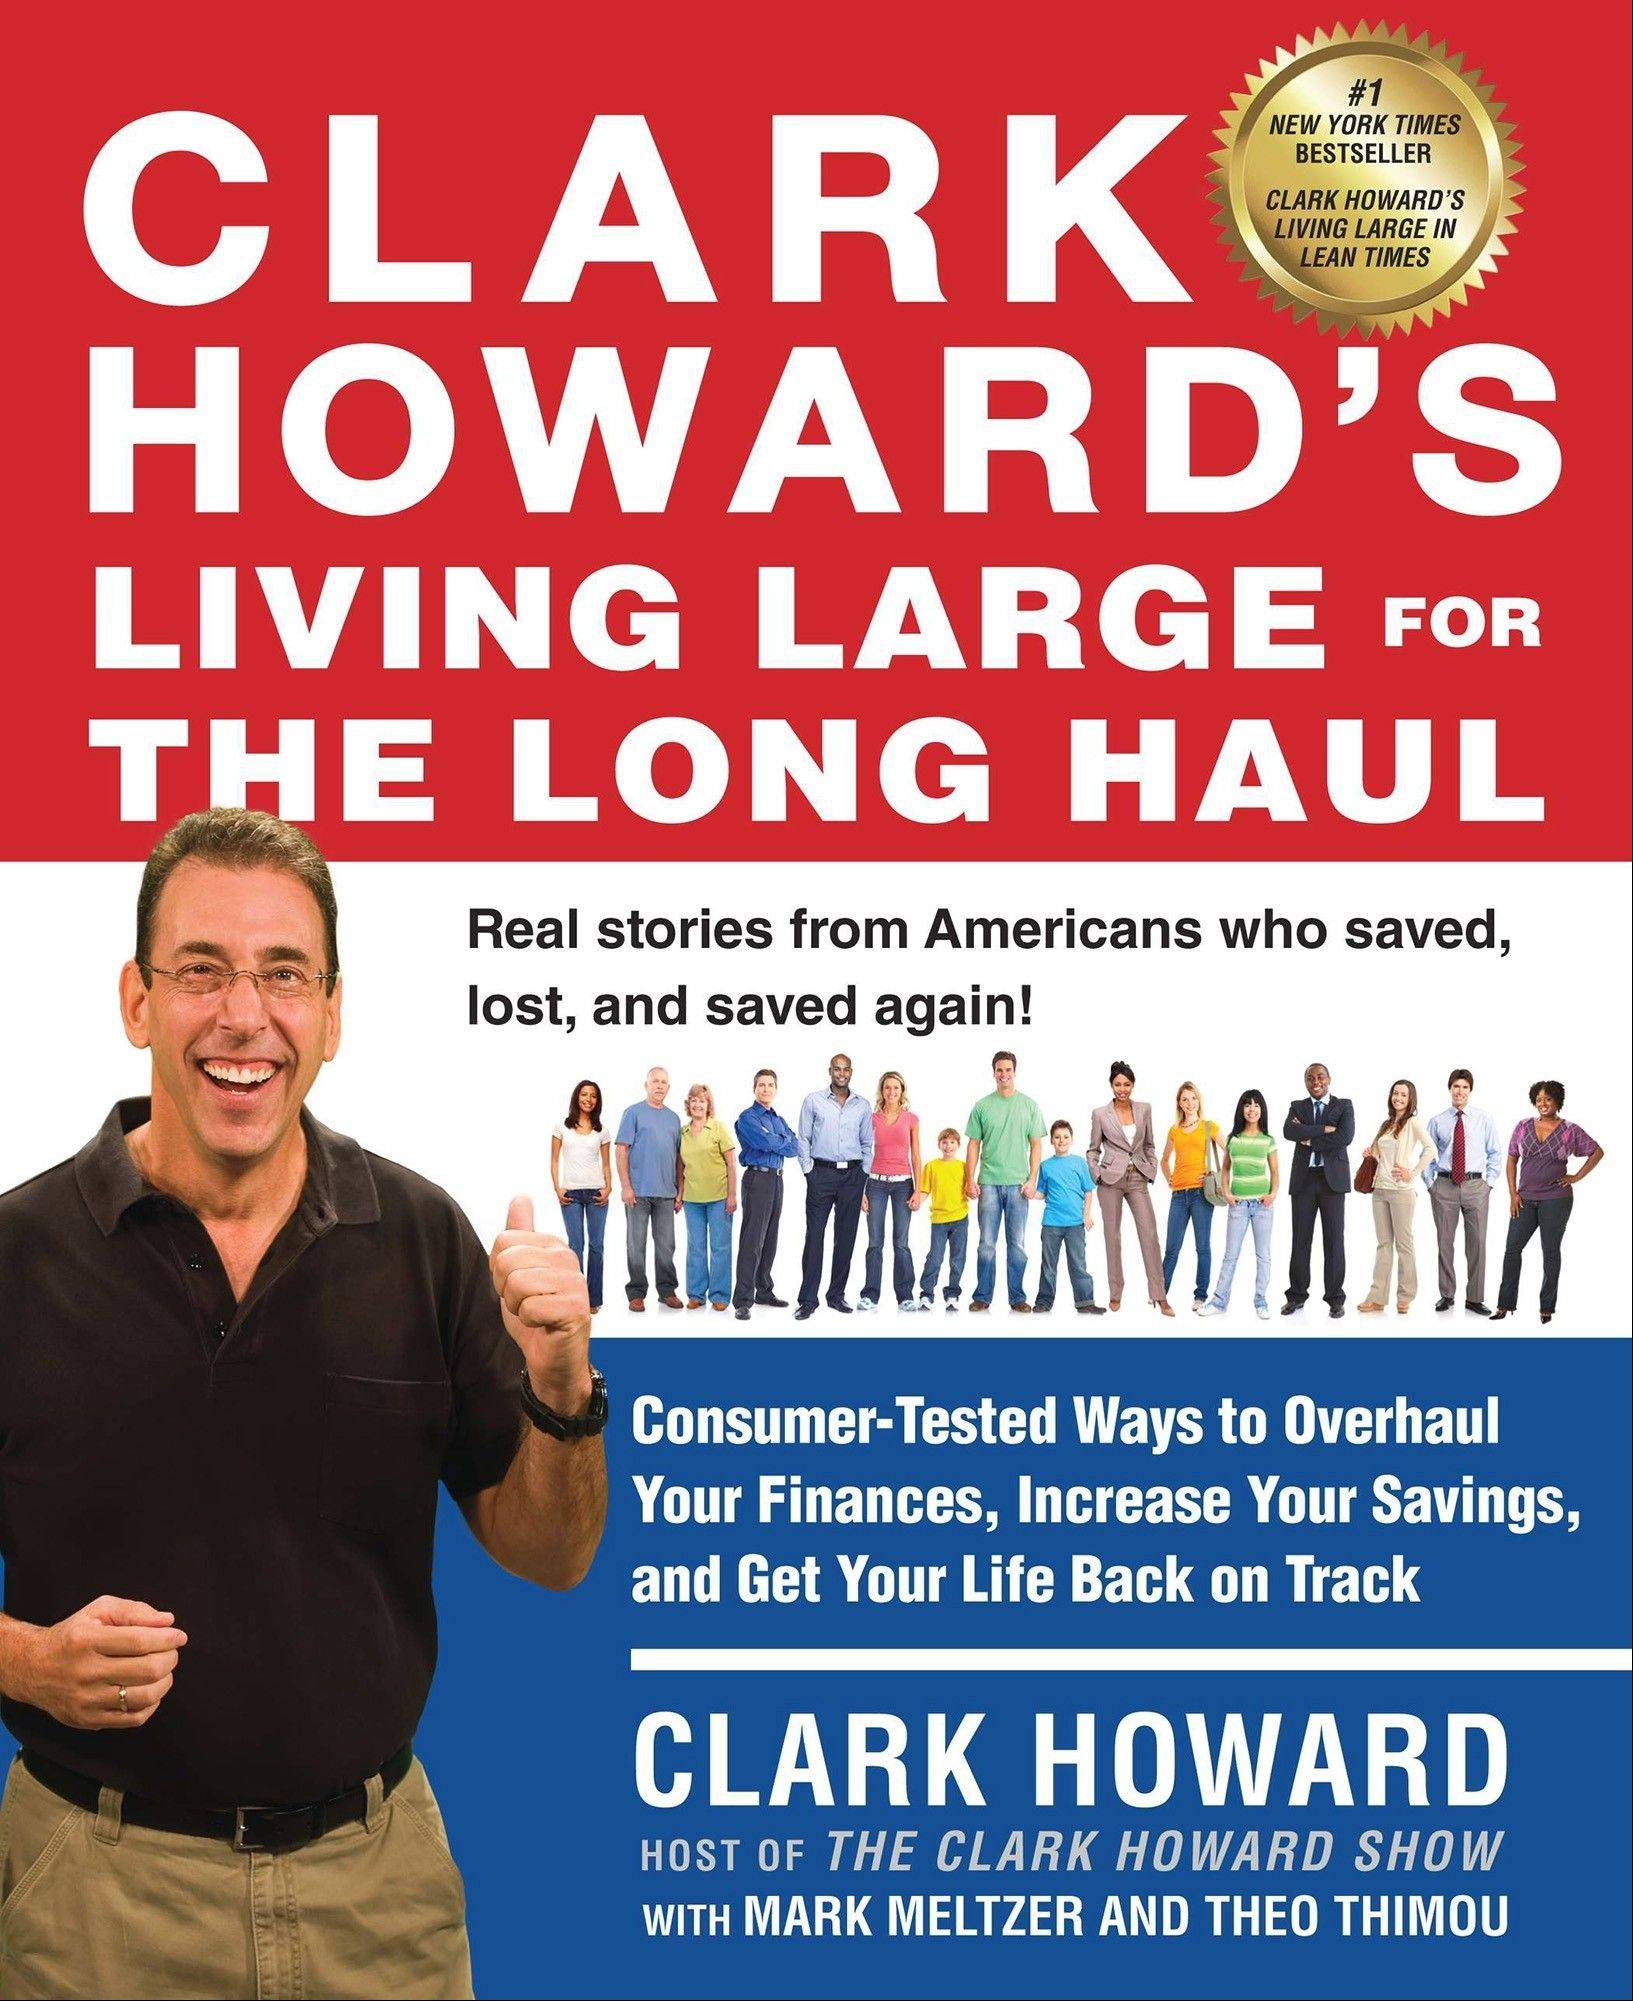 """Living Large for the Long Haul"" signifies more than a collection of hints for saving money. It cements Clark Howard as a kind of economist folk hero."